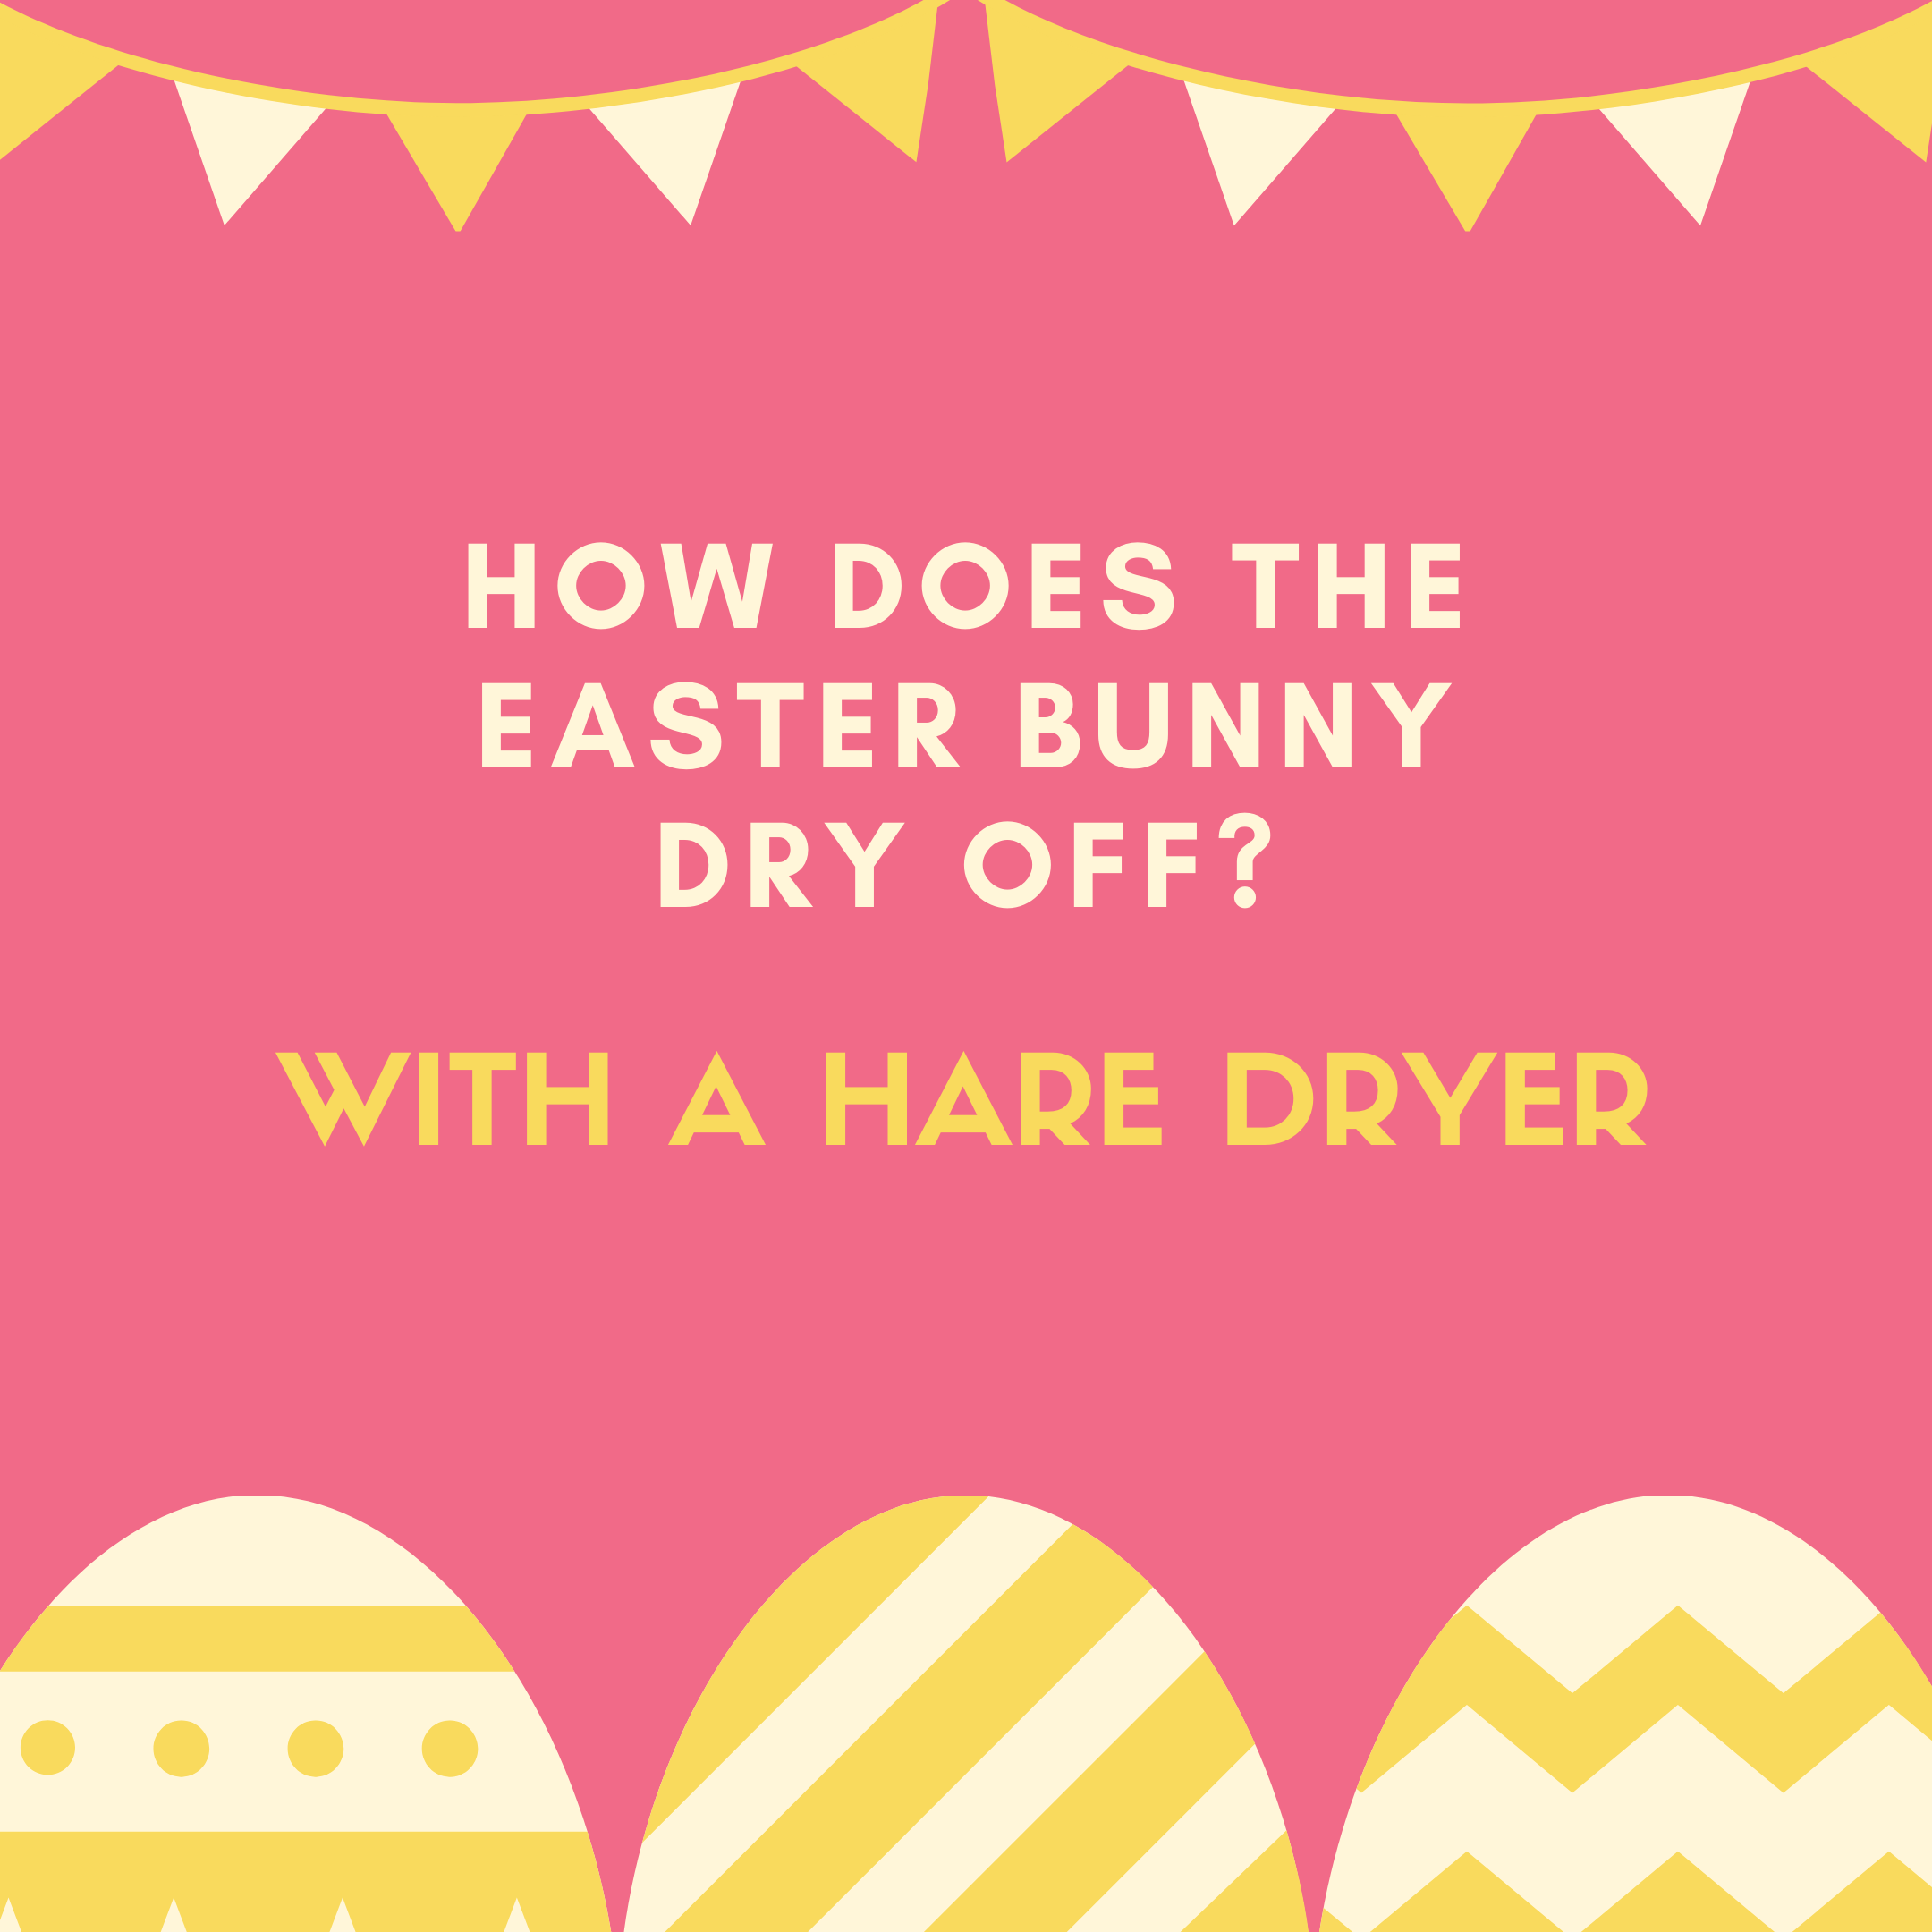 How does the Easter Bunny dry off? With a hare dryer